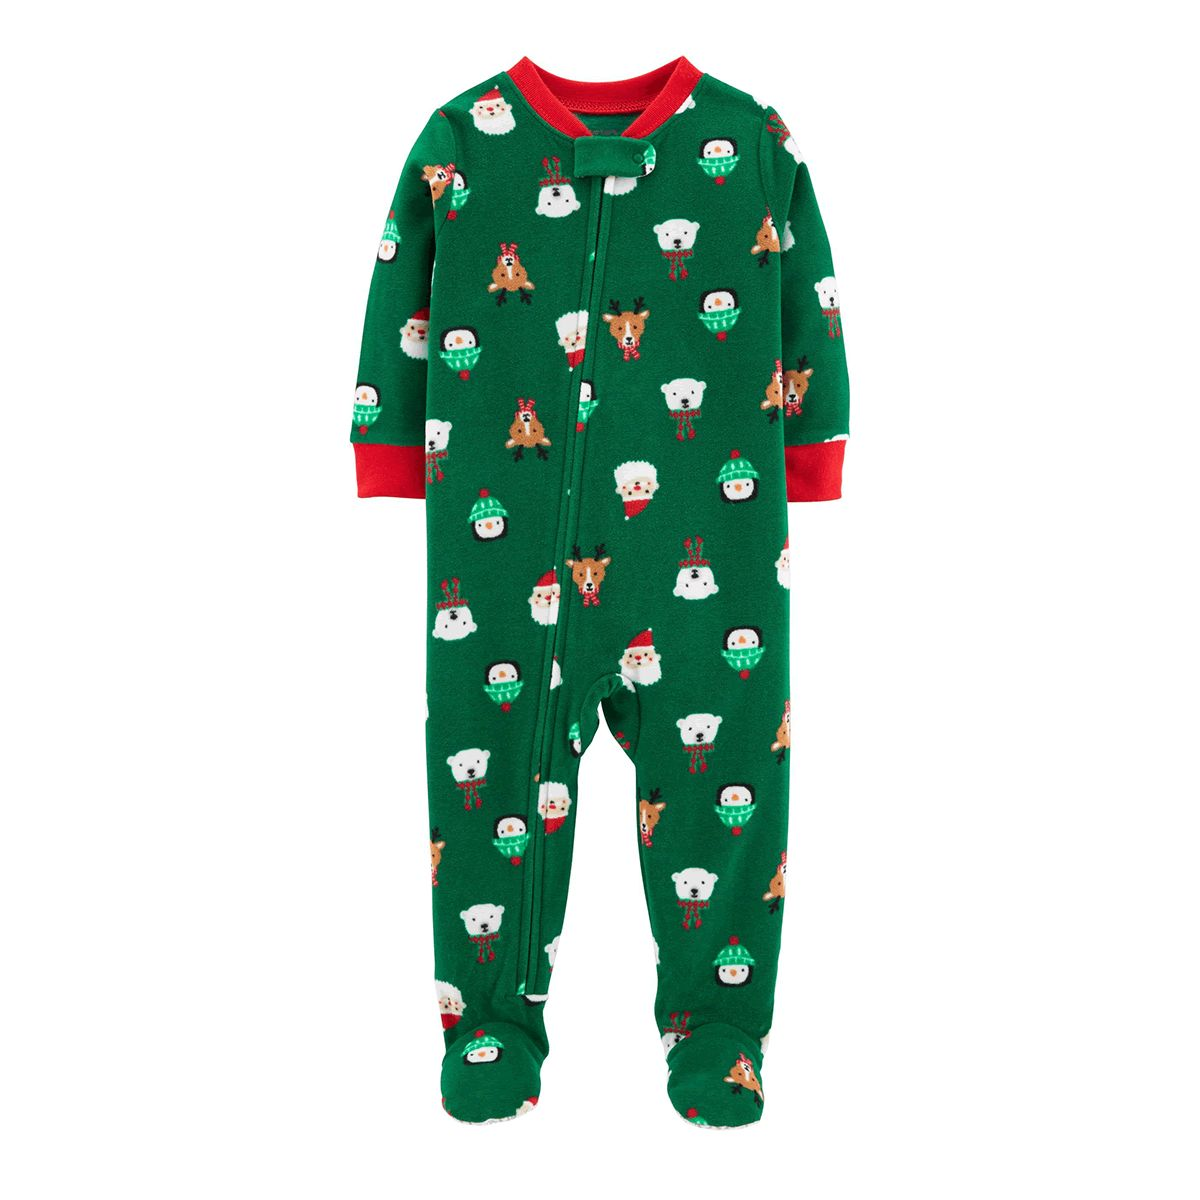 1f4bb4932b Pajamas Carter s Baby Clothes - Macy s